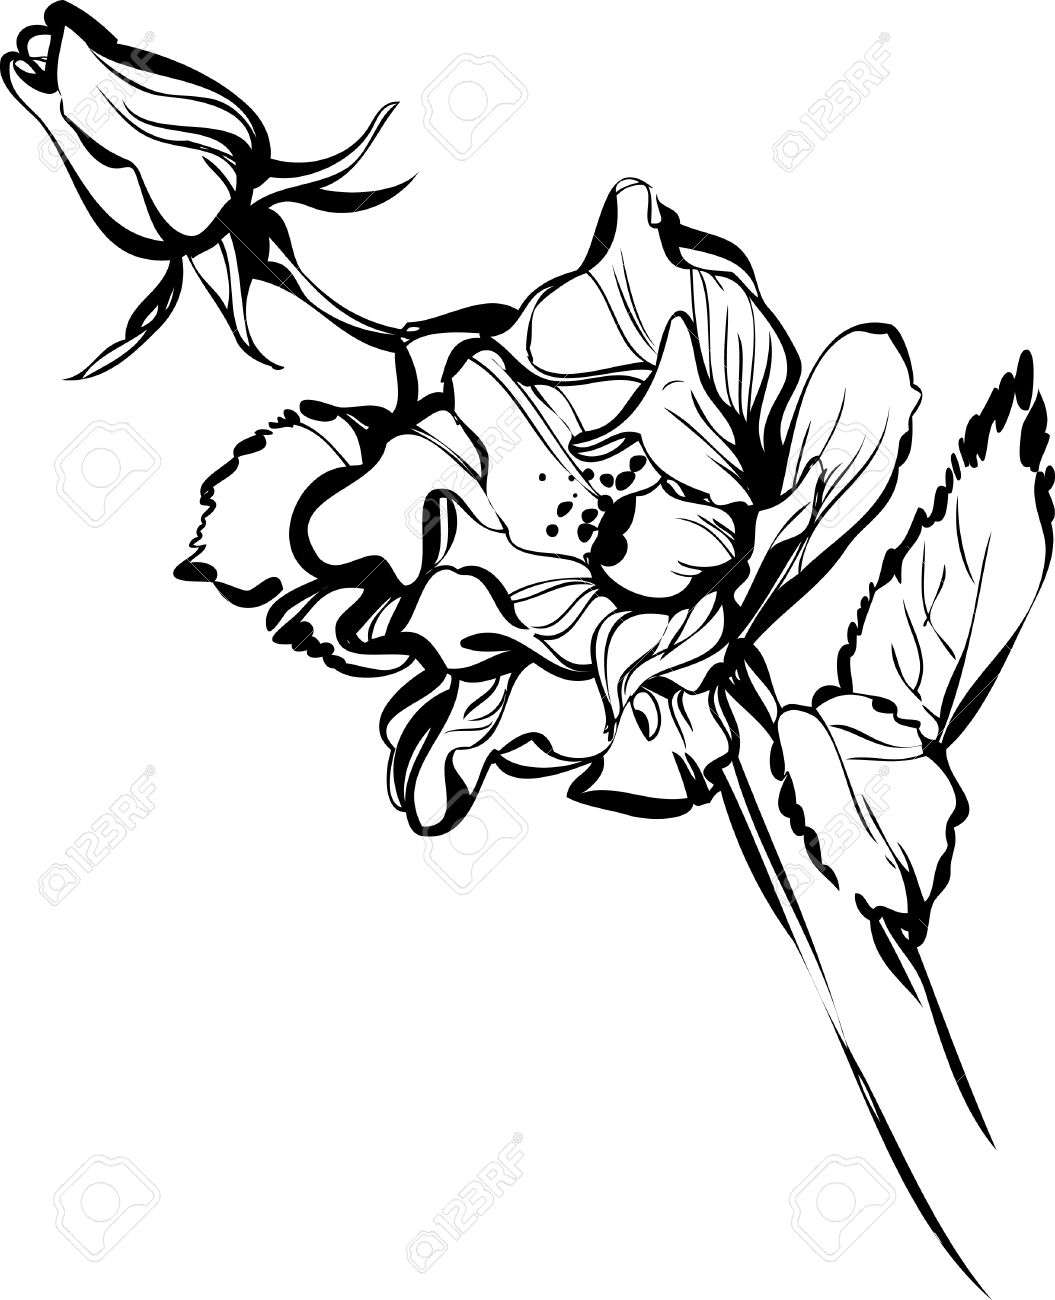 1055x1300 Black And White Drawing Of A Flower Bud Of A Beautiful Royalty